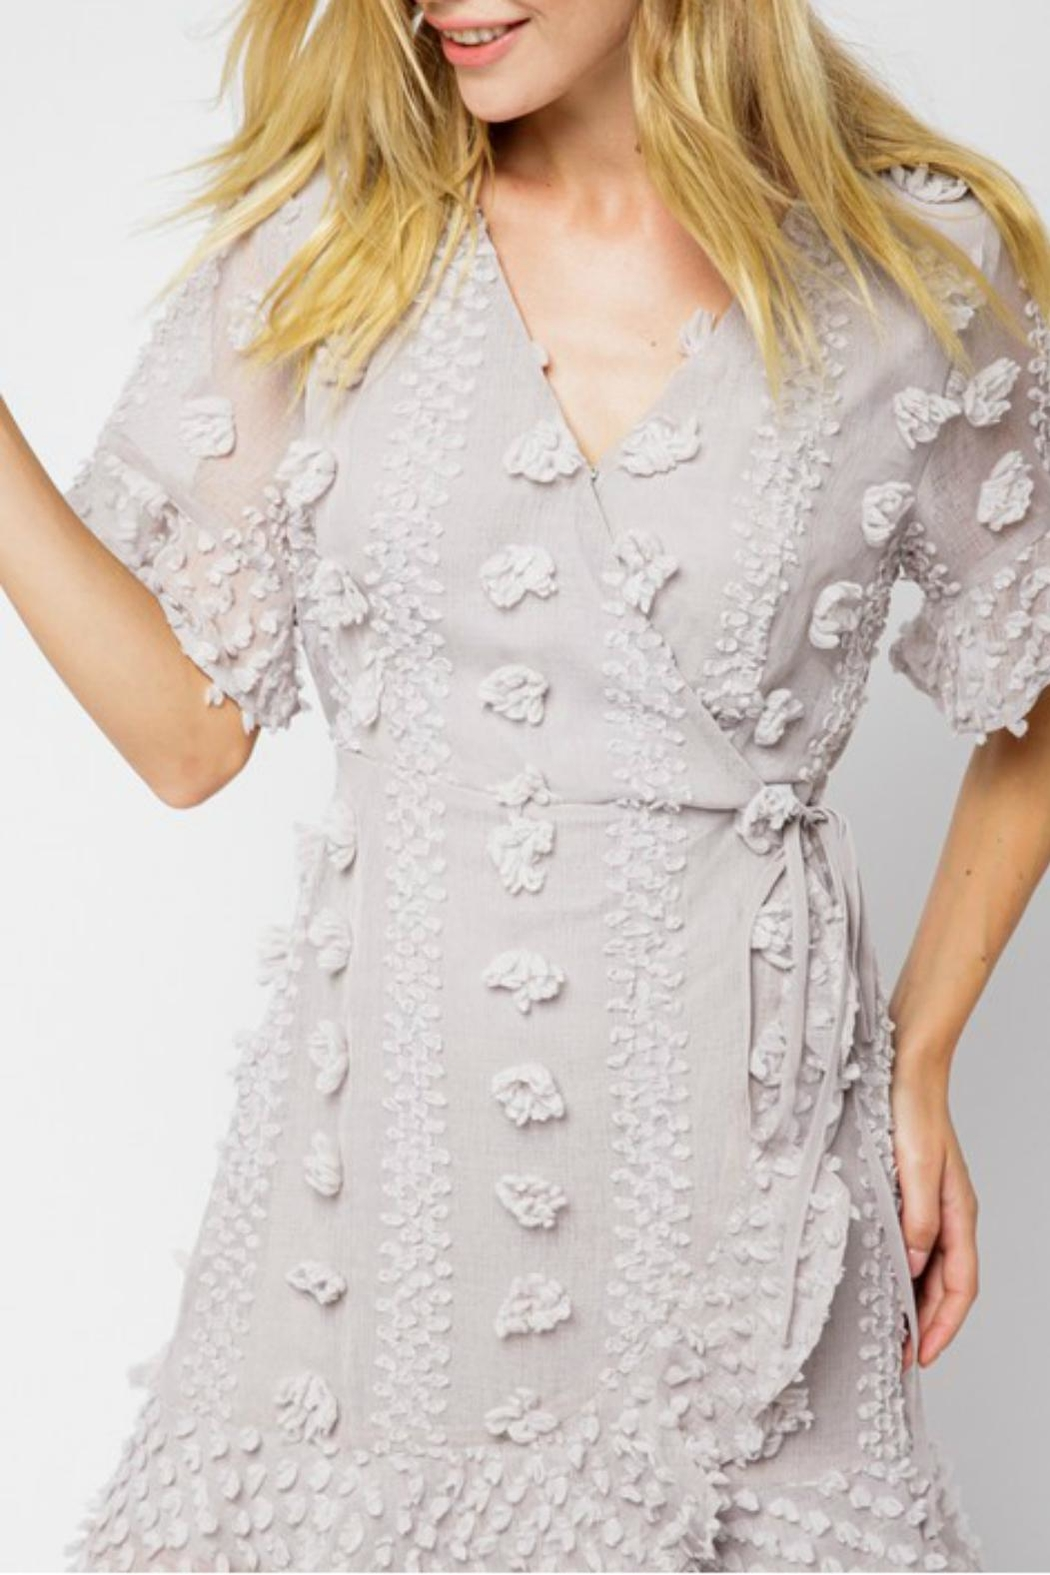 Pretty Little Things Floral Pom-Pom Dress - Front Full Image